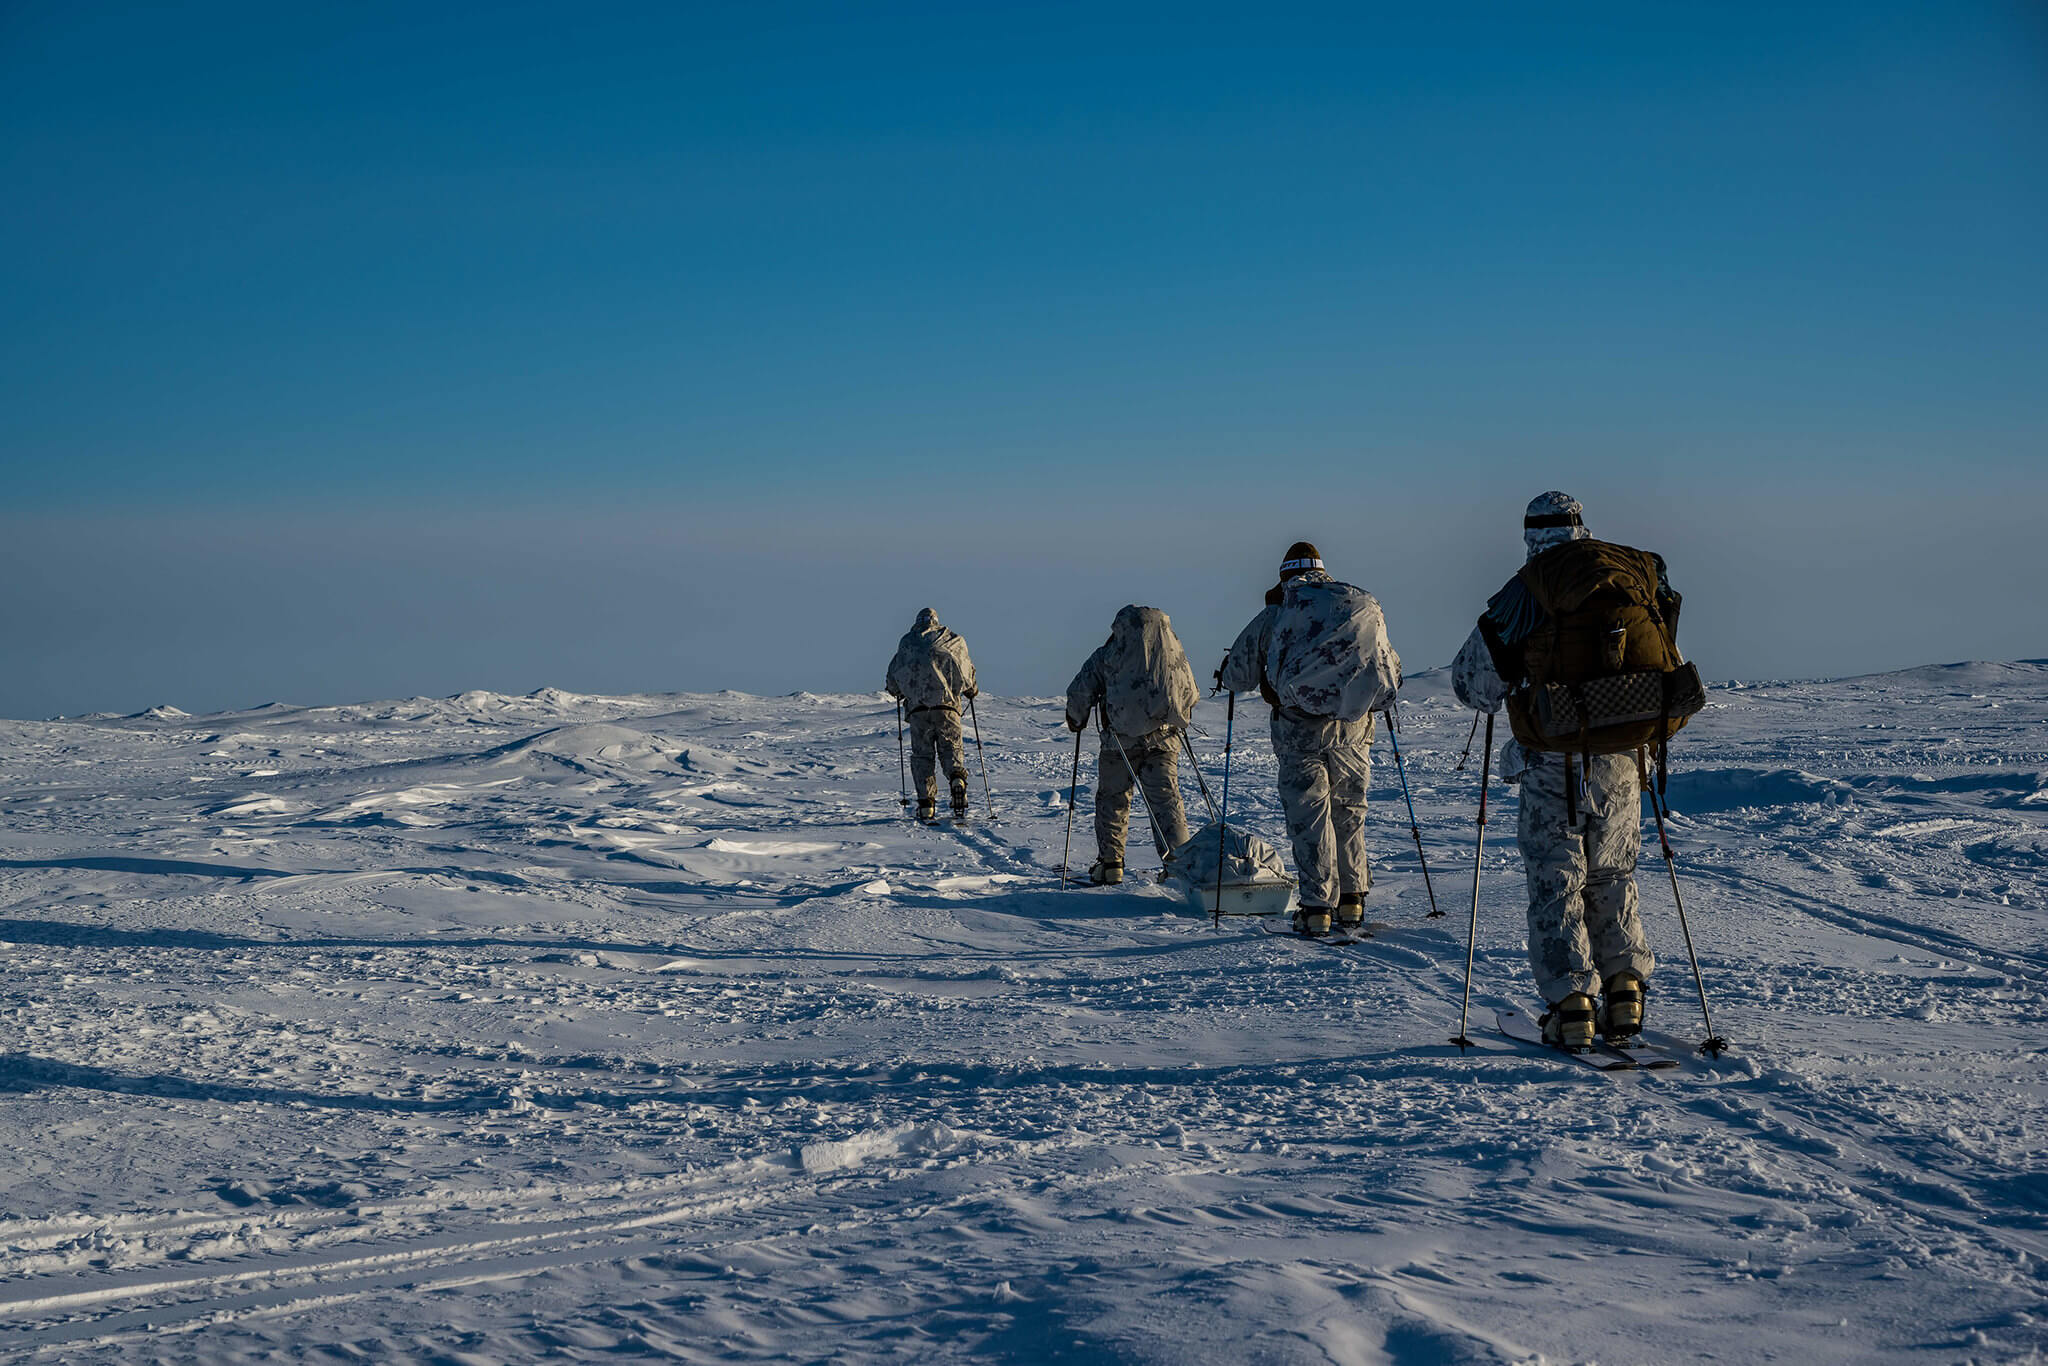 US Marines go on a ski tour outside of Ice Camp Seadragion during Ice Exercise (ICEX), Antarctica, 10 March 2020 © US Into-Pacific Command / Flickr